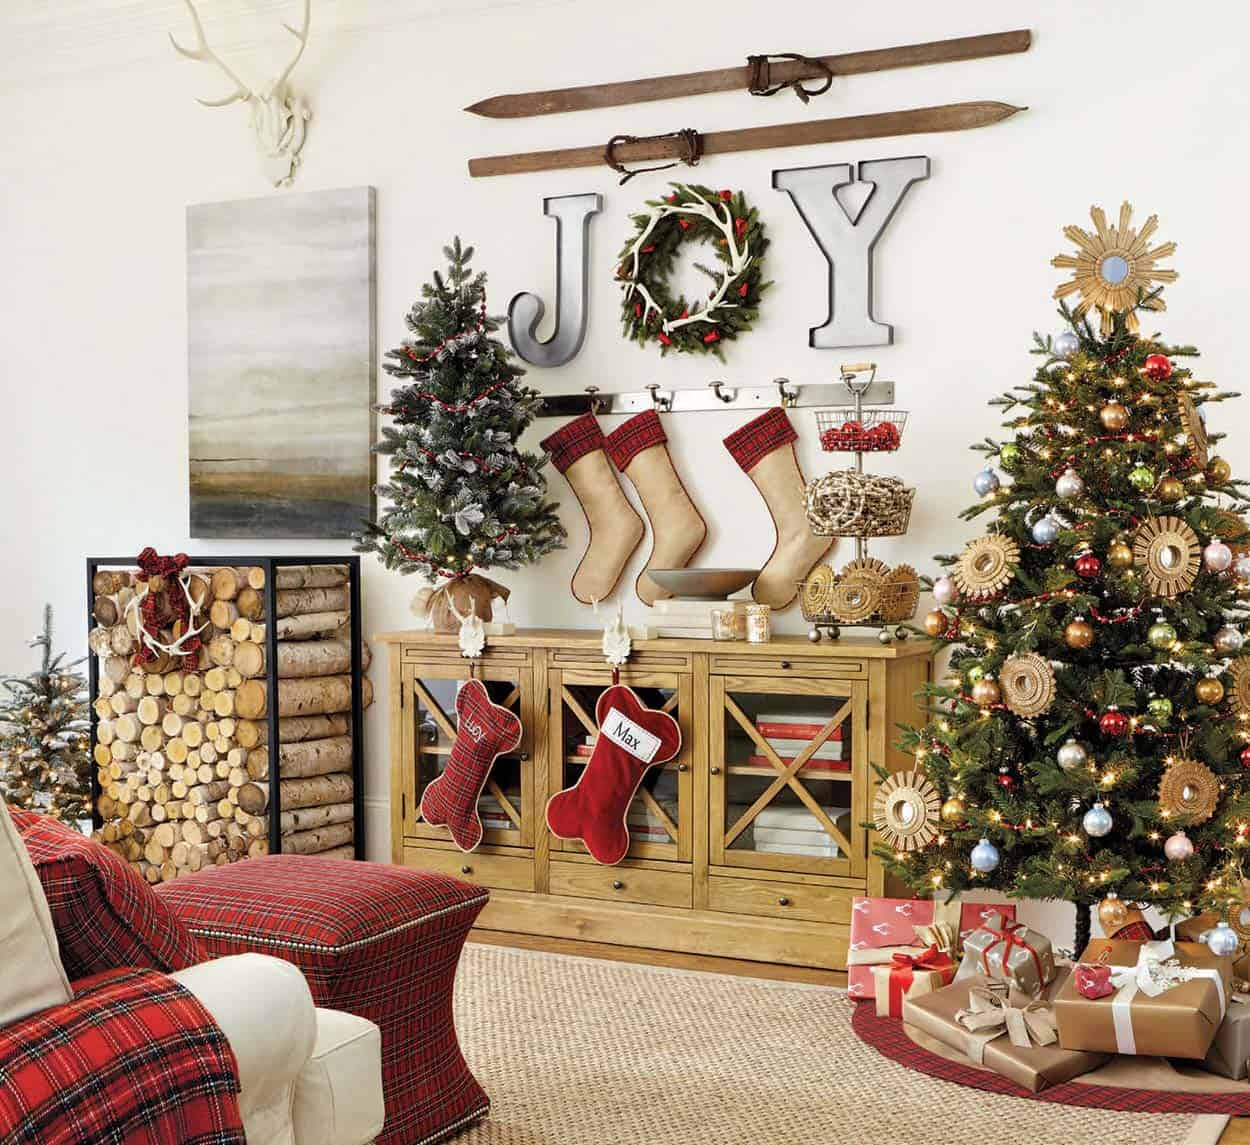 Outdoor Christmas Decorations With Pine